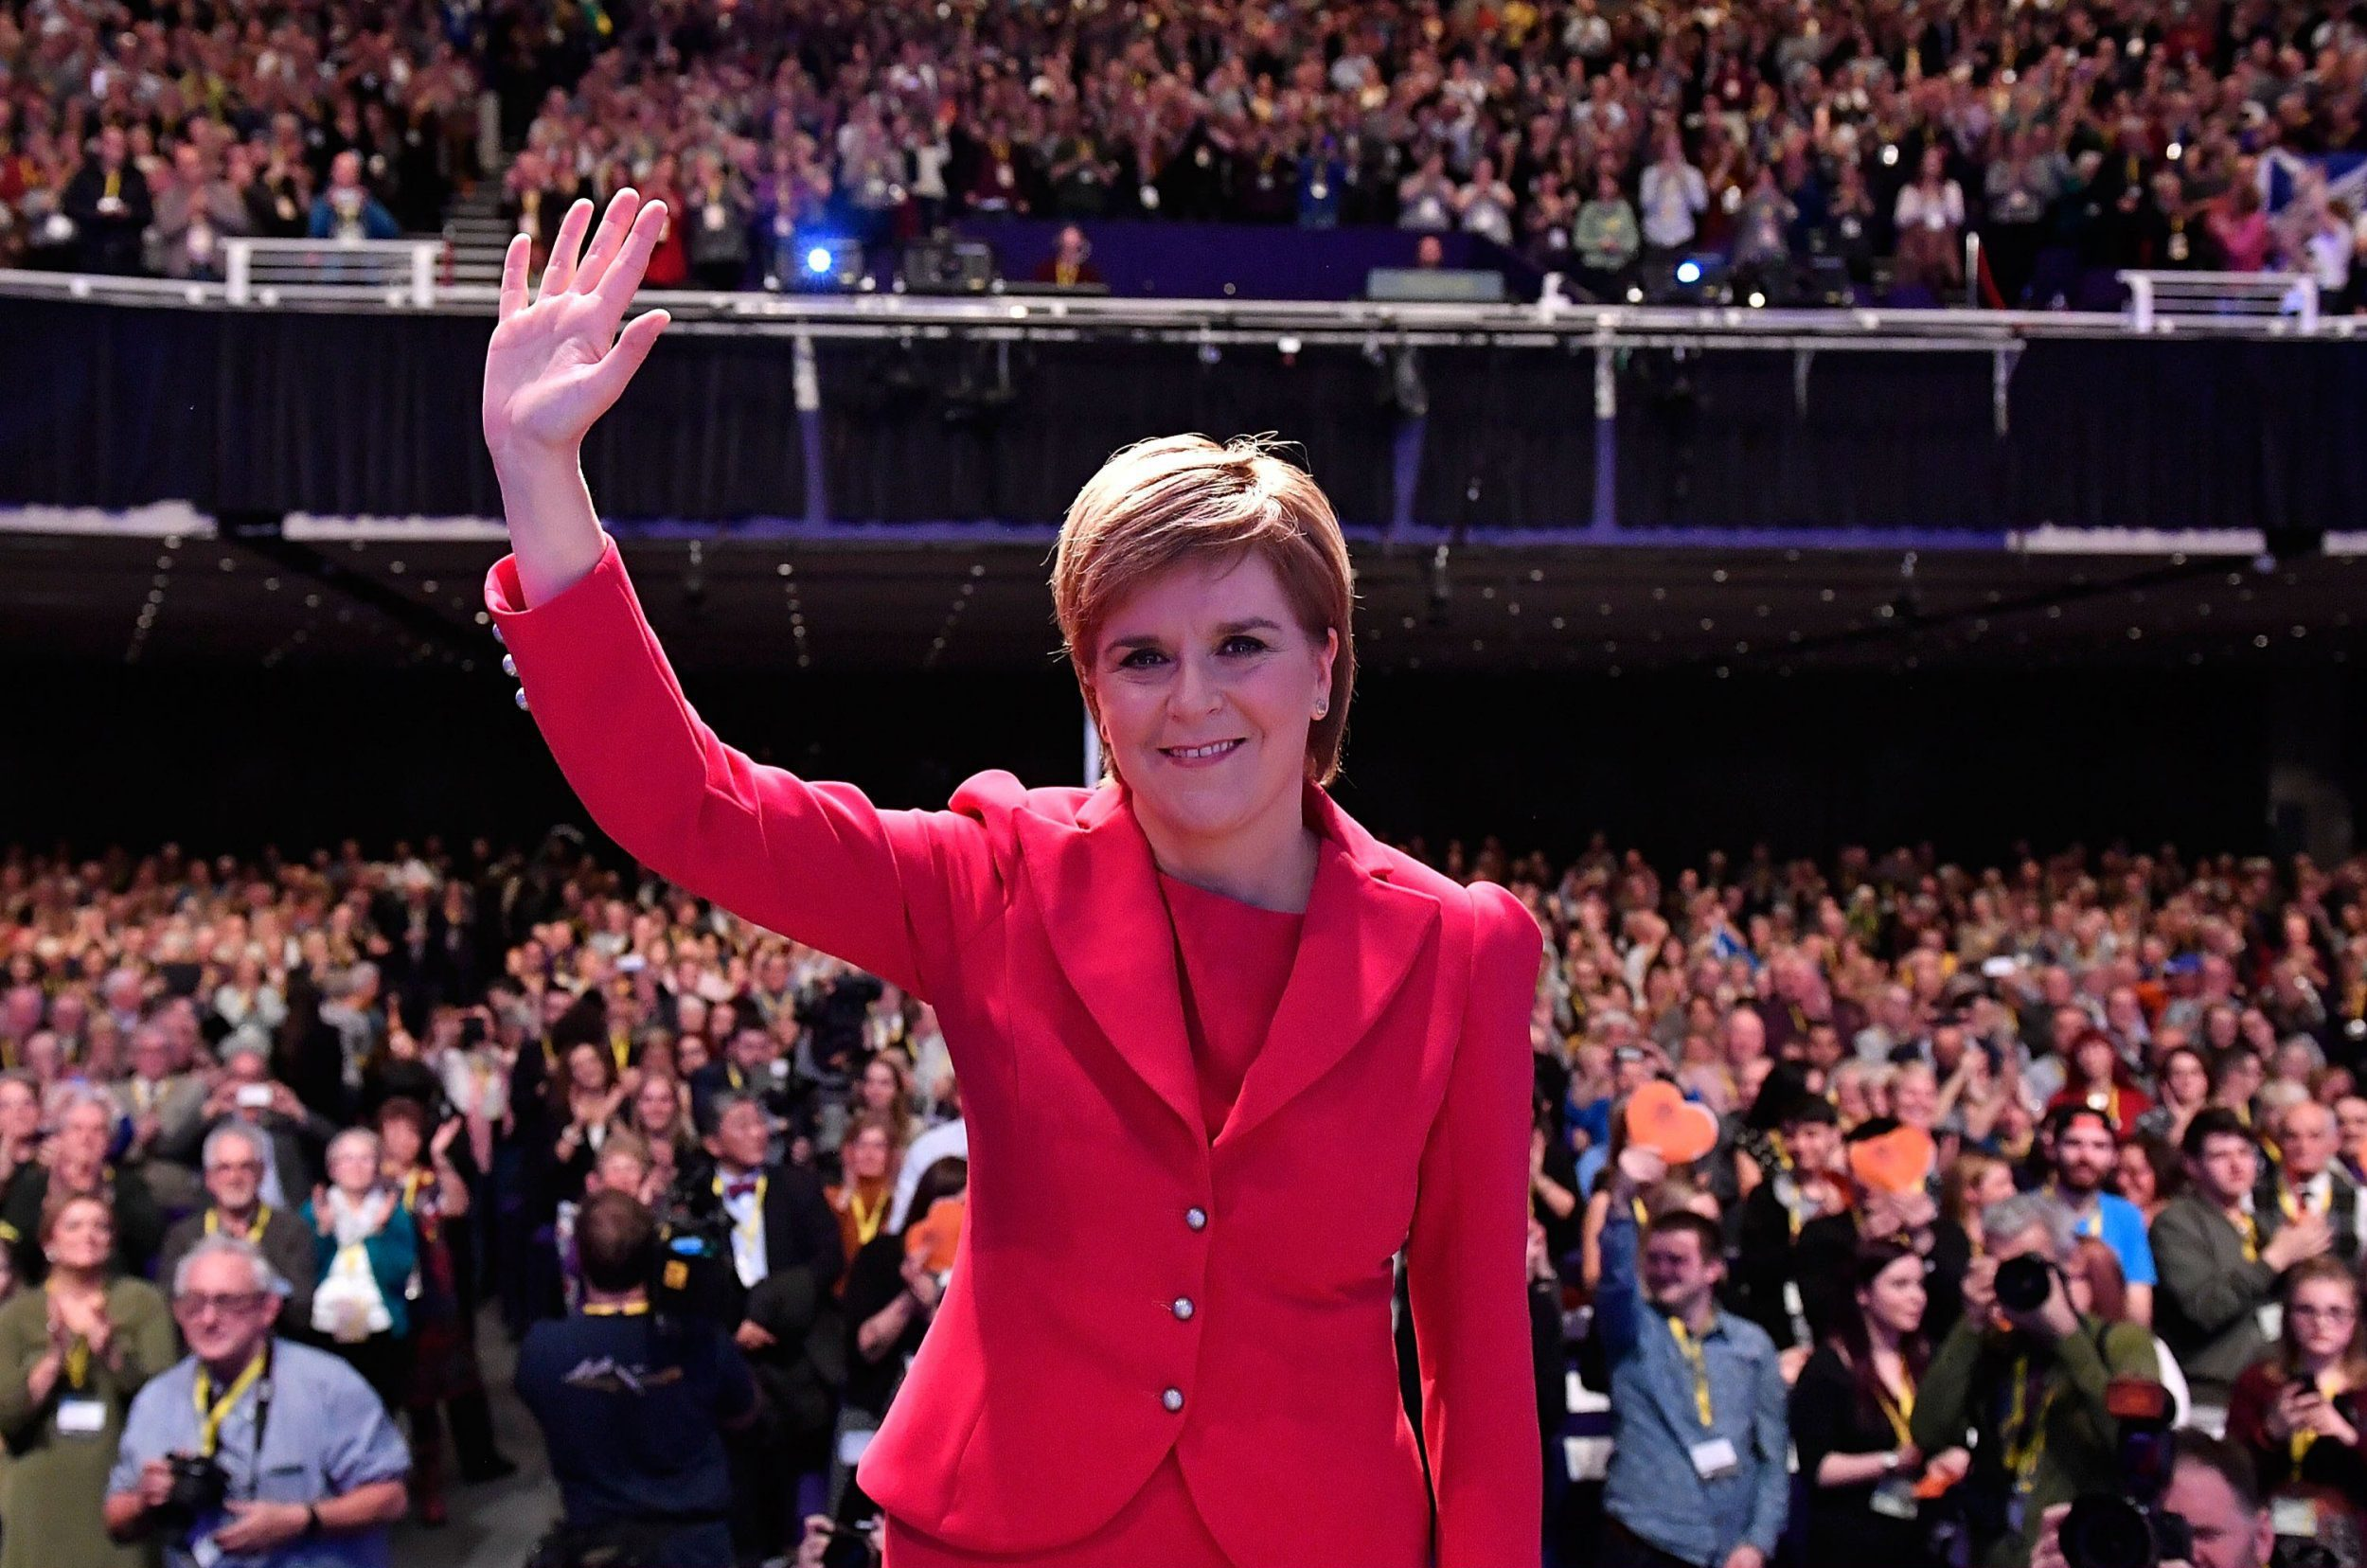 Scotland set to call Independence referendum in the next 3 years